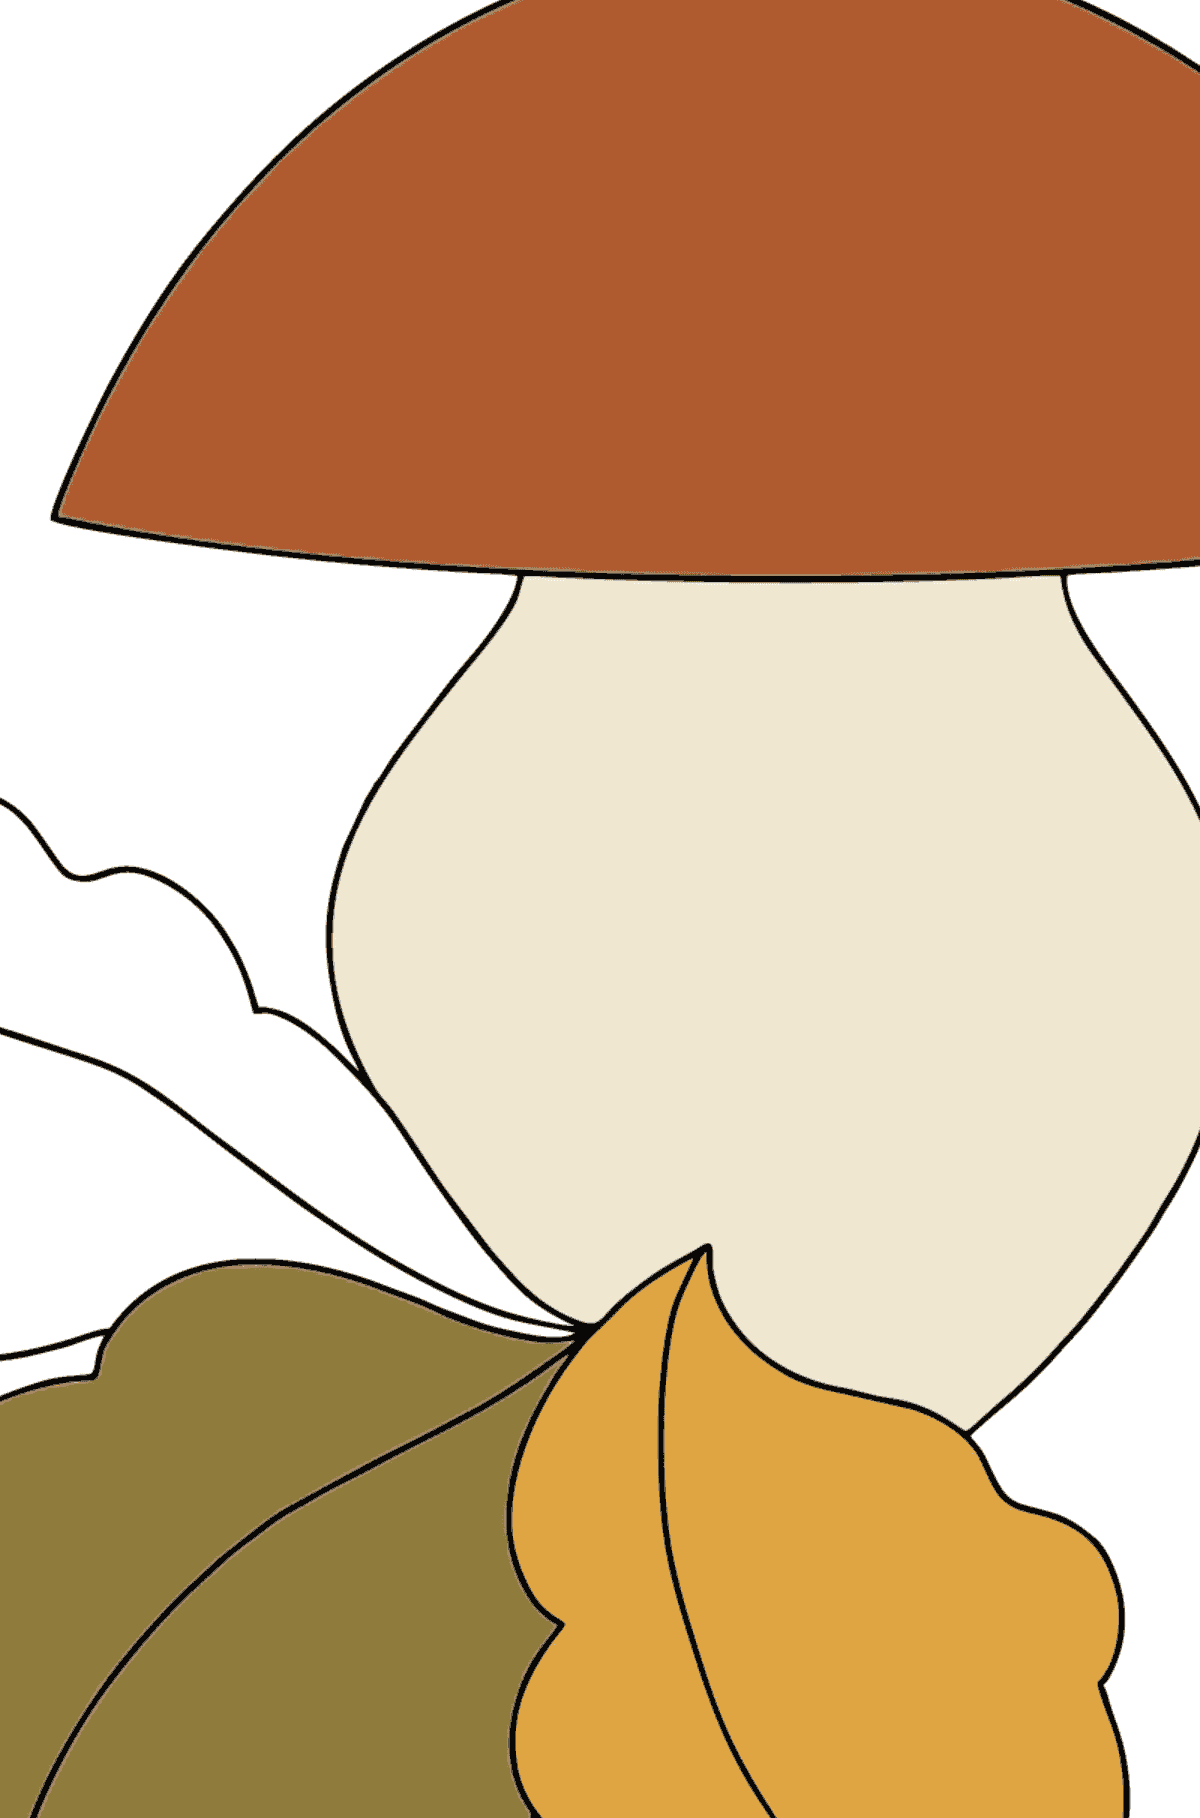 Autumn Coloring Page - Mushroom Season for Kids  - Color by Number